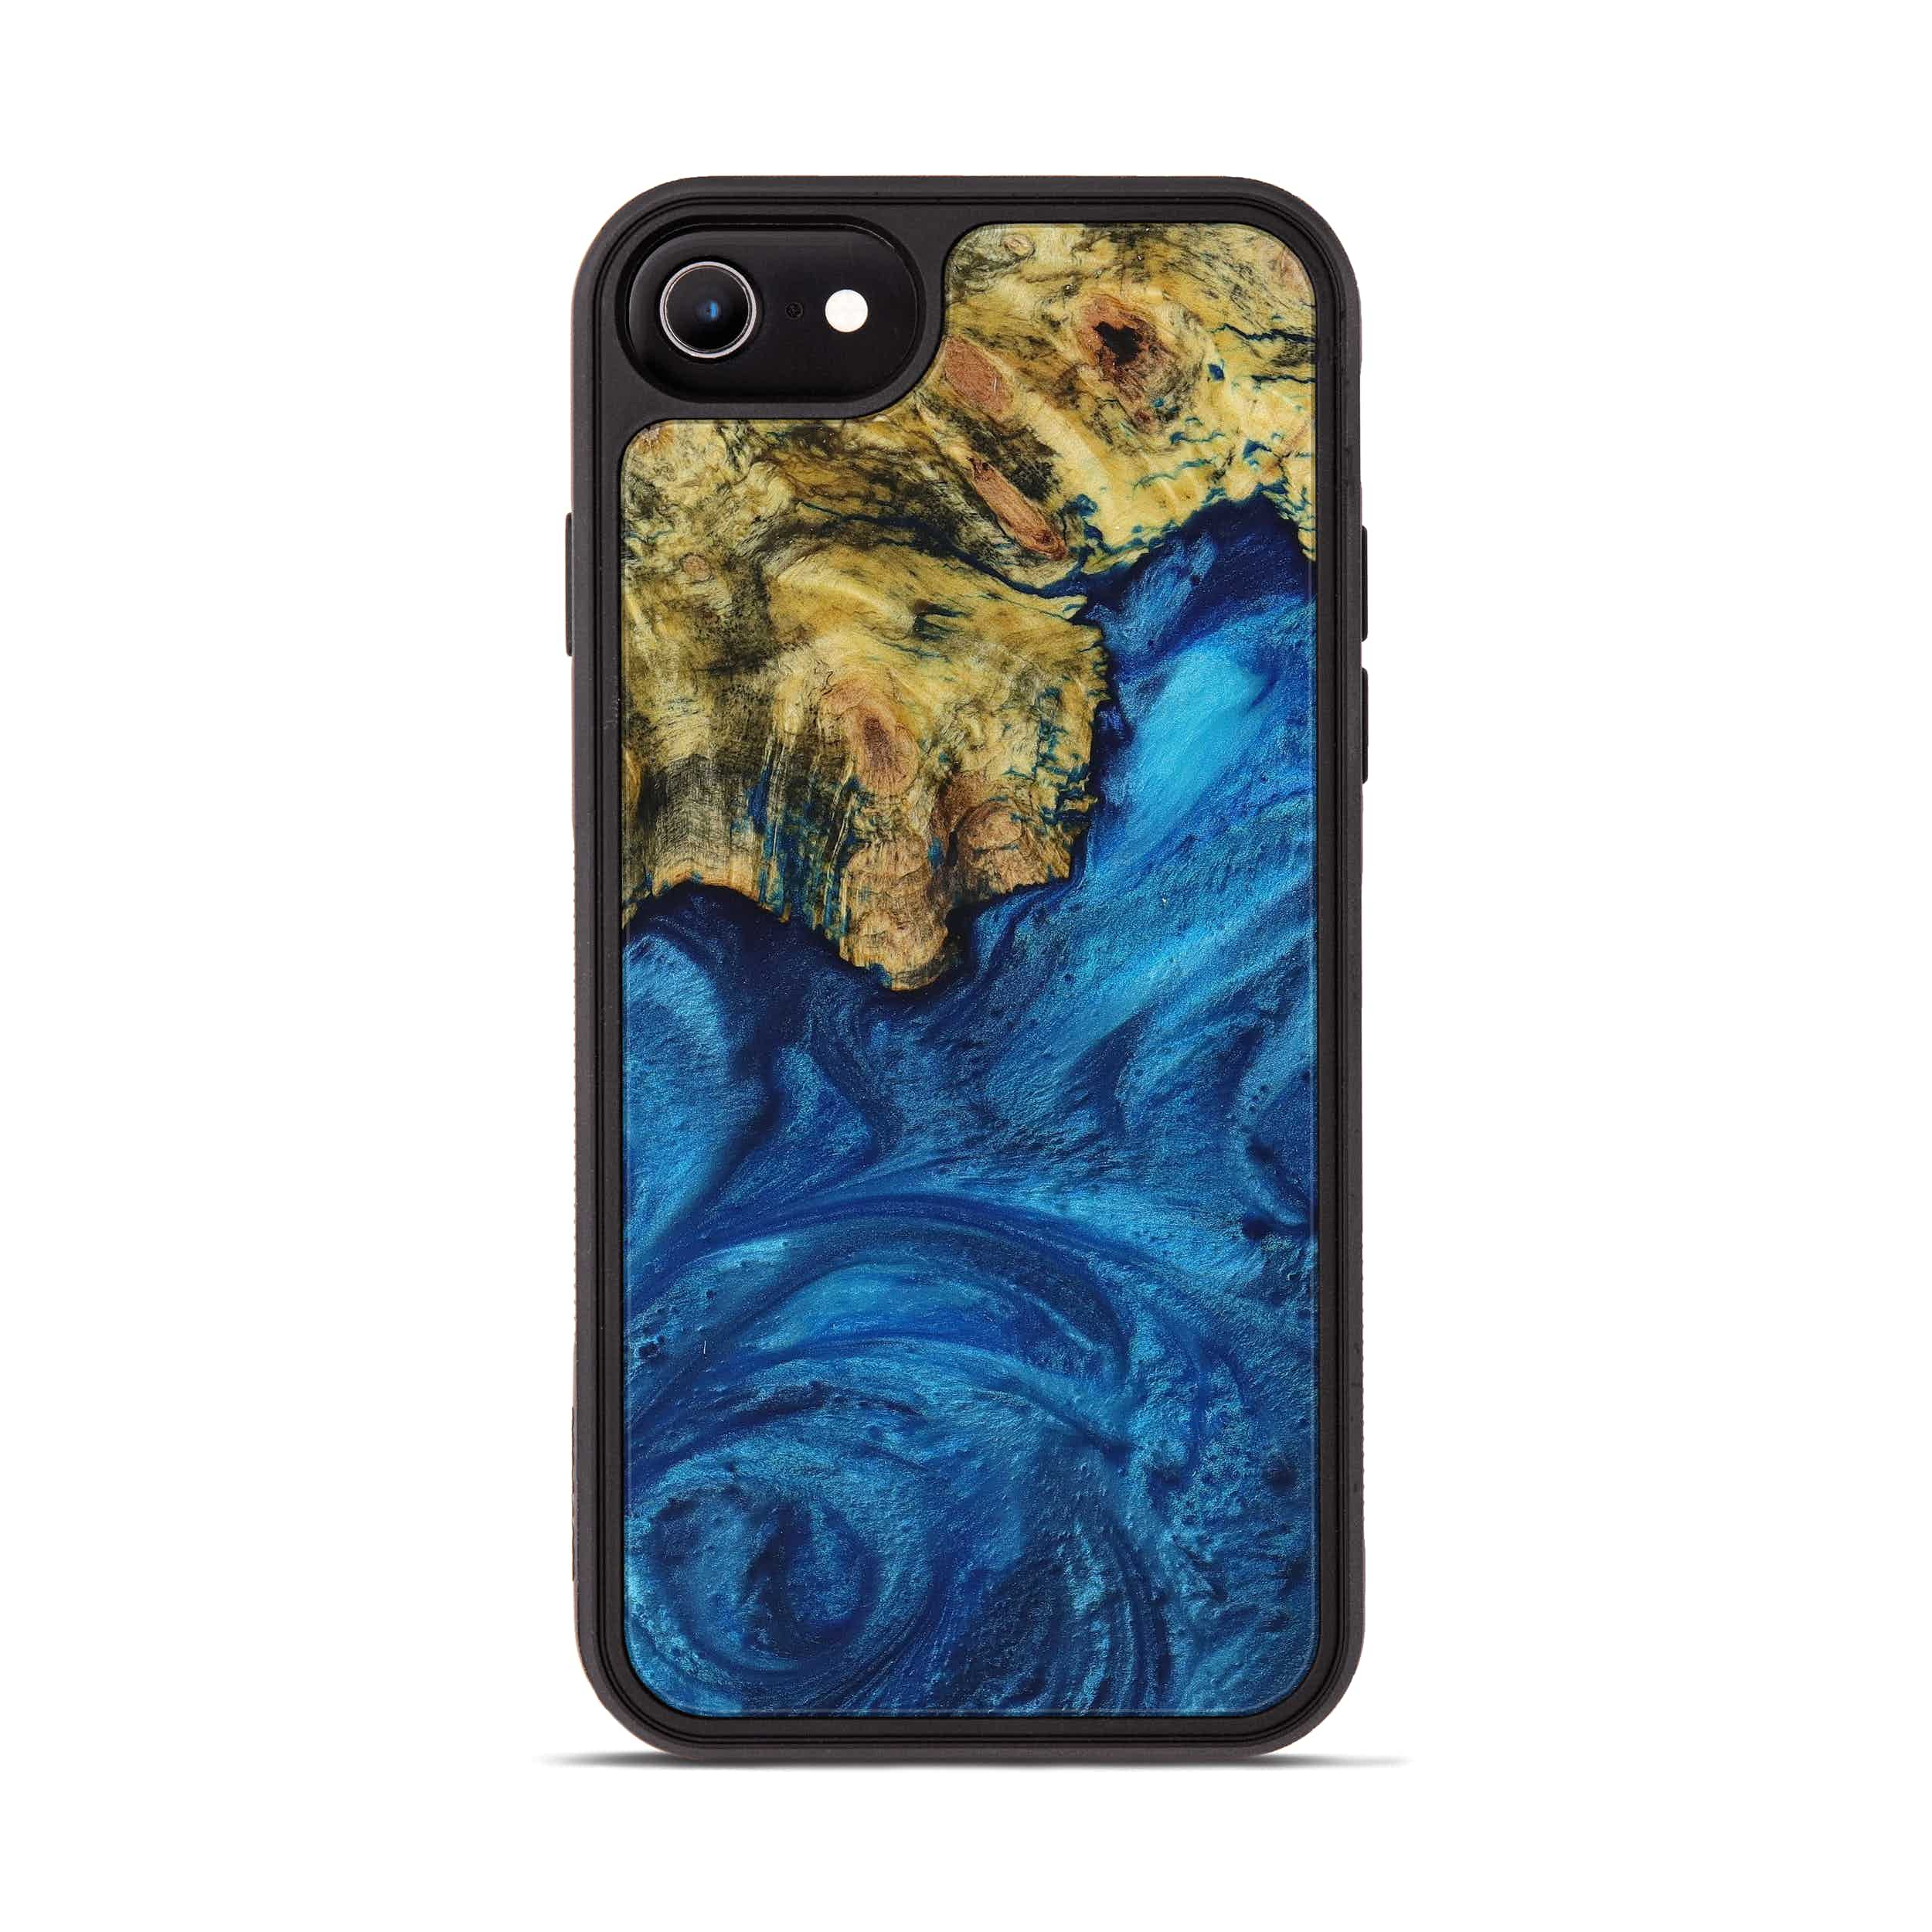 iPhone 6s Wood+Resin Phone Case - Meridel (Dark Blue, 395183)